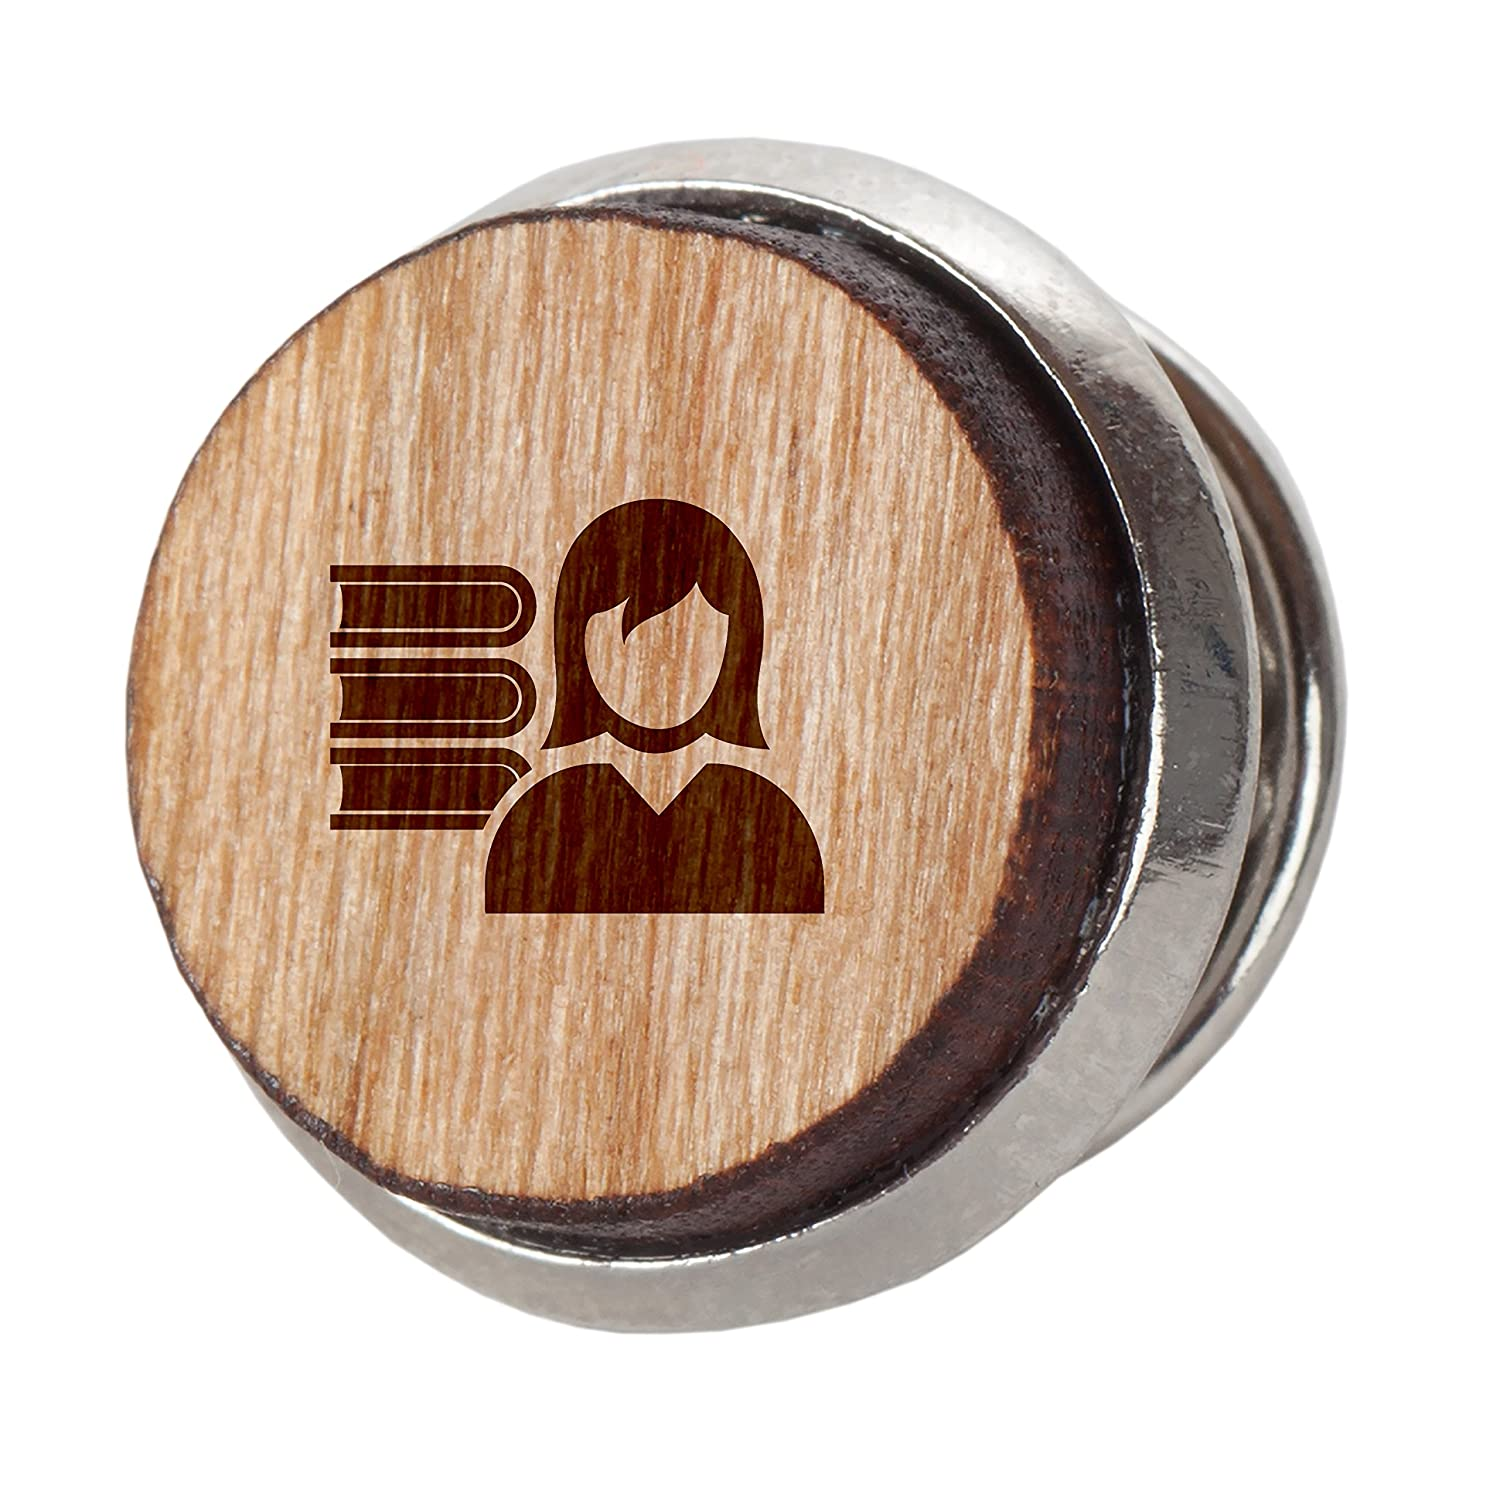 Engraved Tie Tack Gift Librarian Stylish Cherry Wood Tie Tack 12Mm Simple Tie Clip with Laser Engraved Design